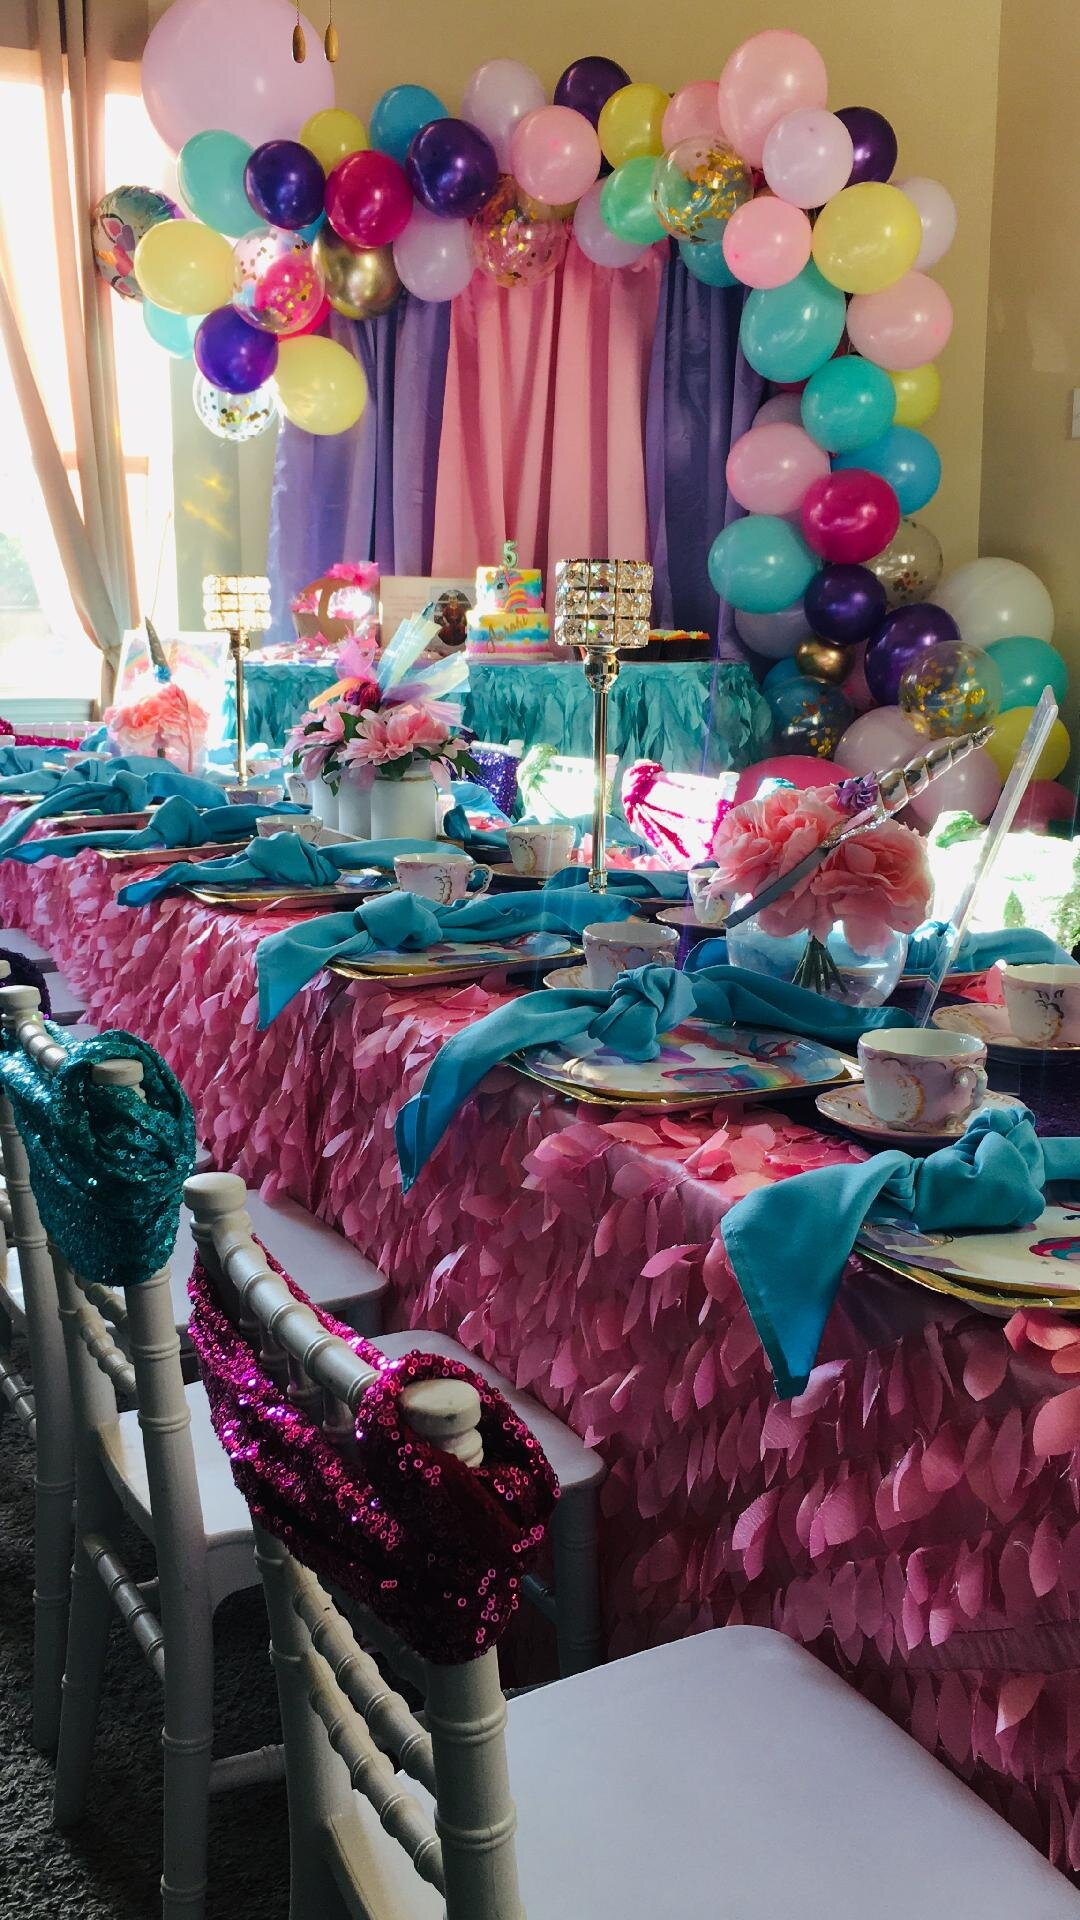 houston princess tea party for kids girls birthday parties spring the woodlands memorial pearland sugar land west university league city friendswood tomball humble kingwood 2.jpg